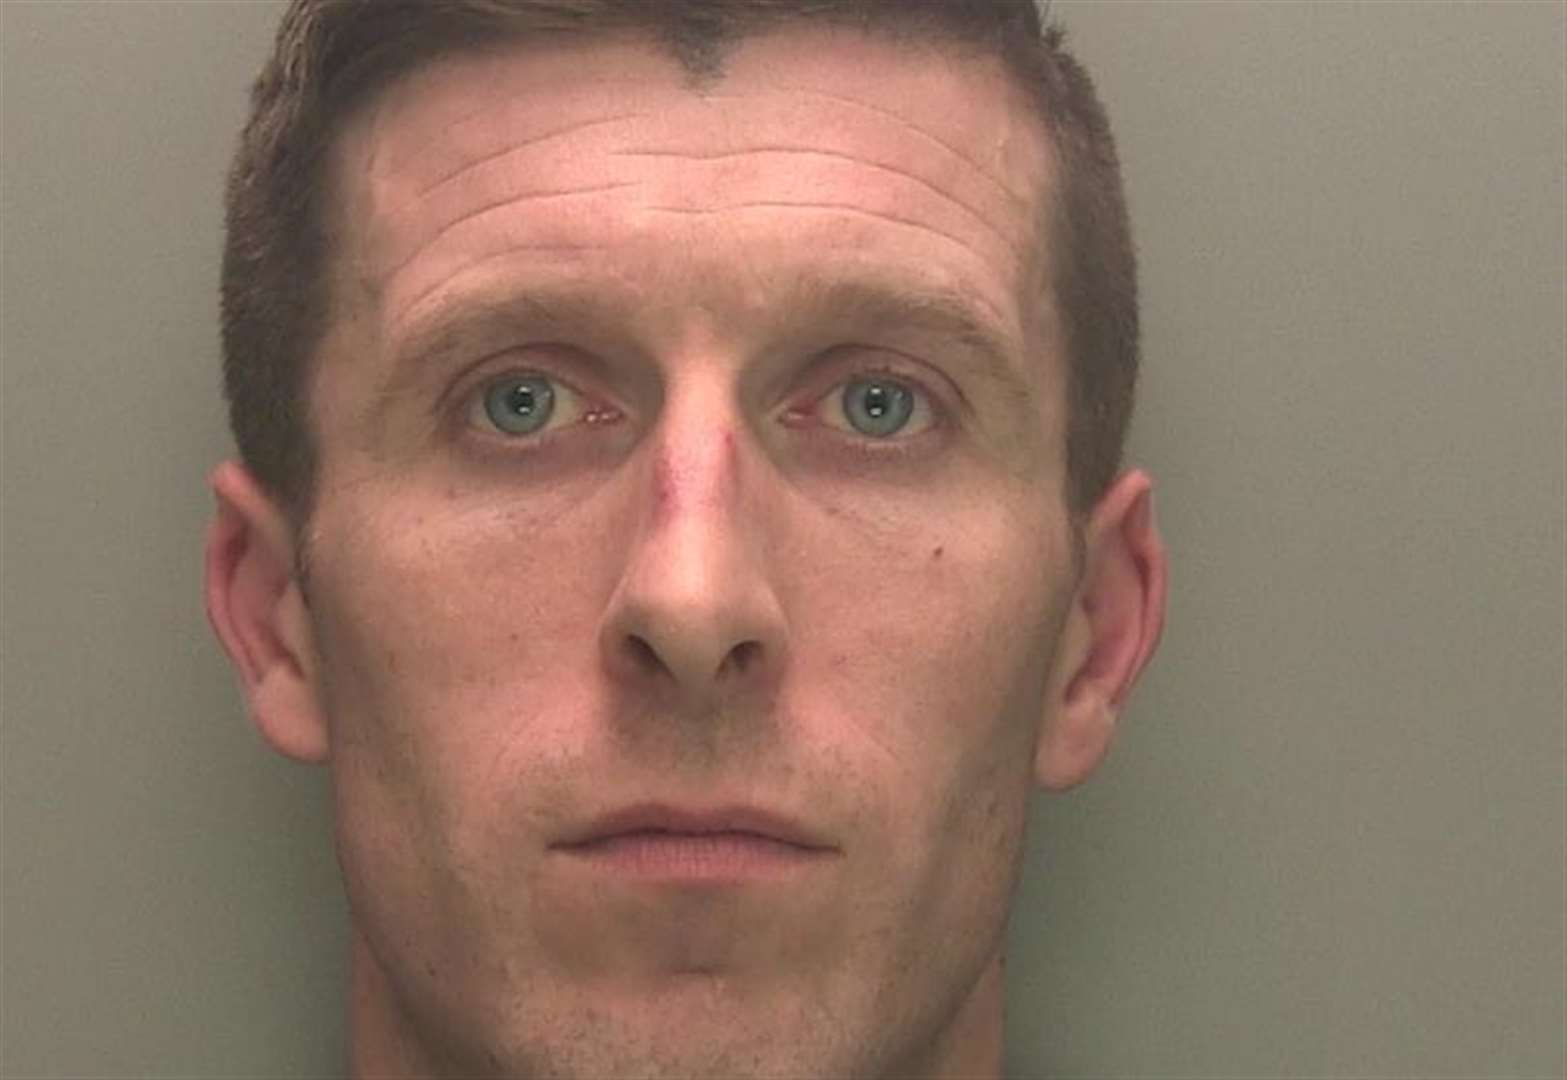 Spalding man jailed for five years after admitting sex with 15-year-old girl after grooming